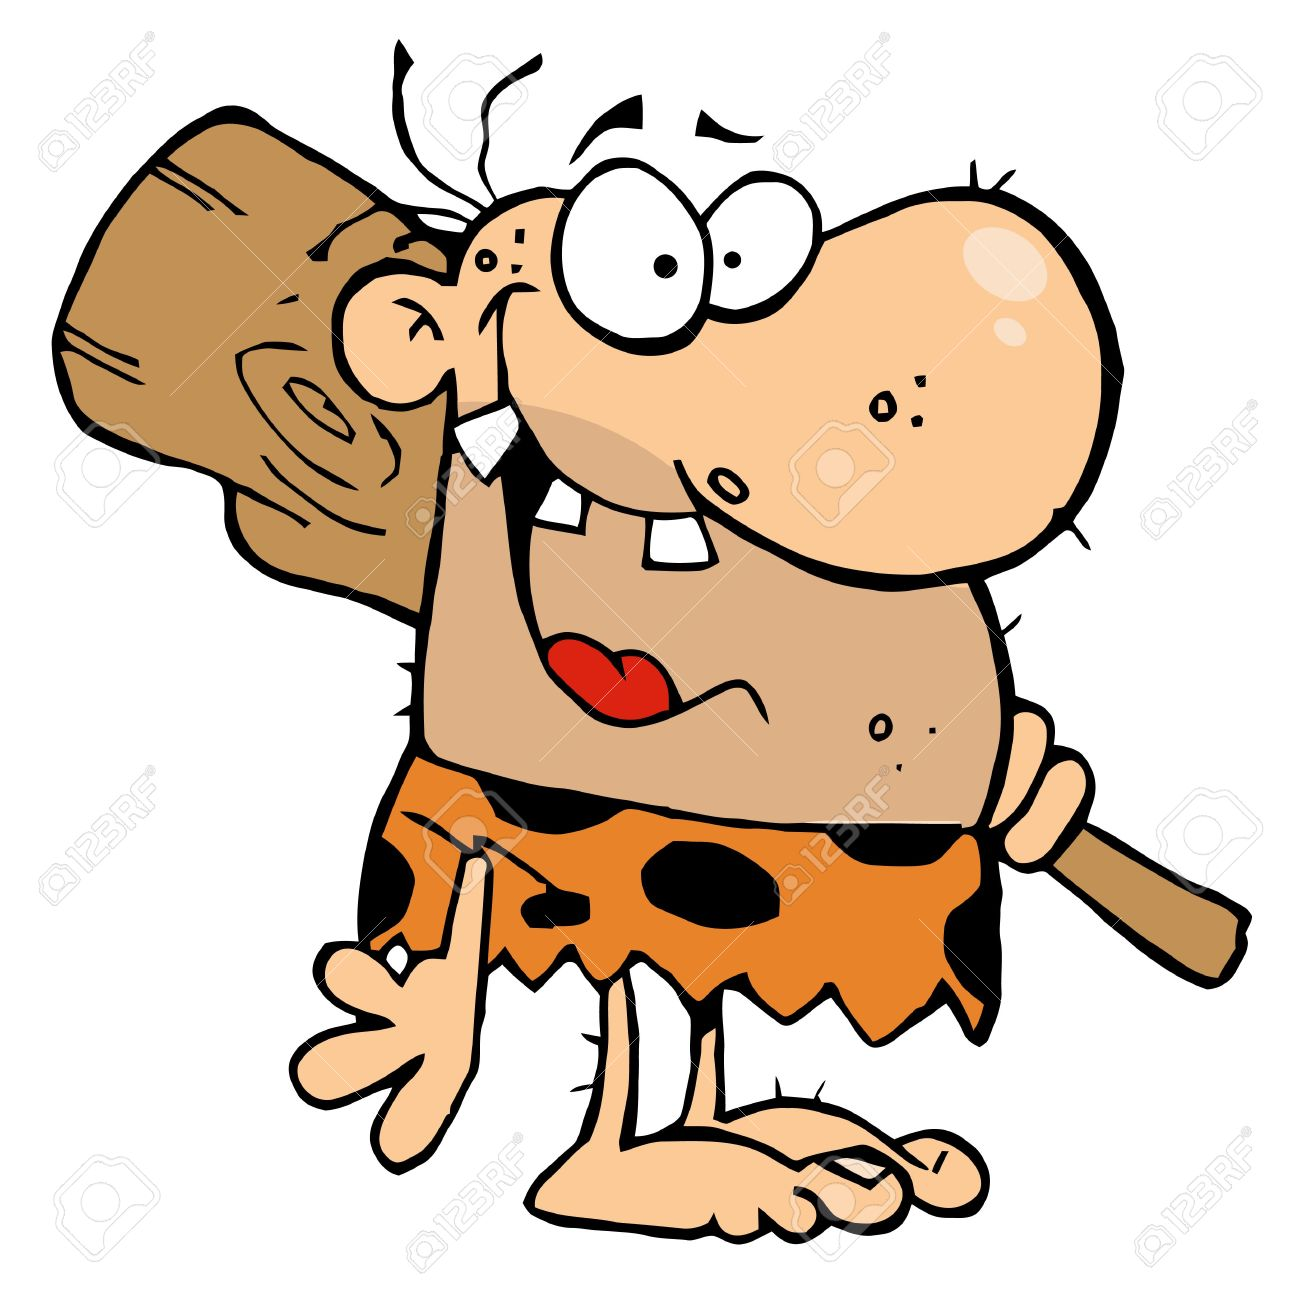 Stone age clipart 4 » Clipart Station.